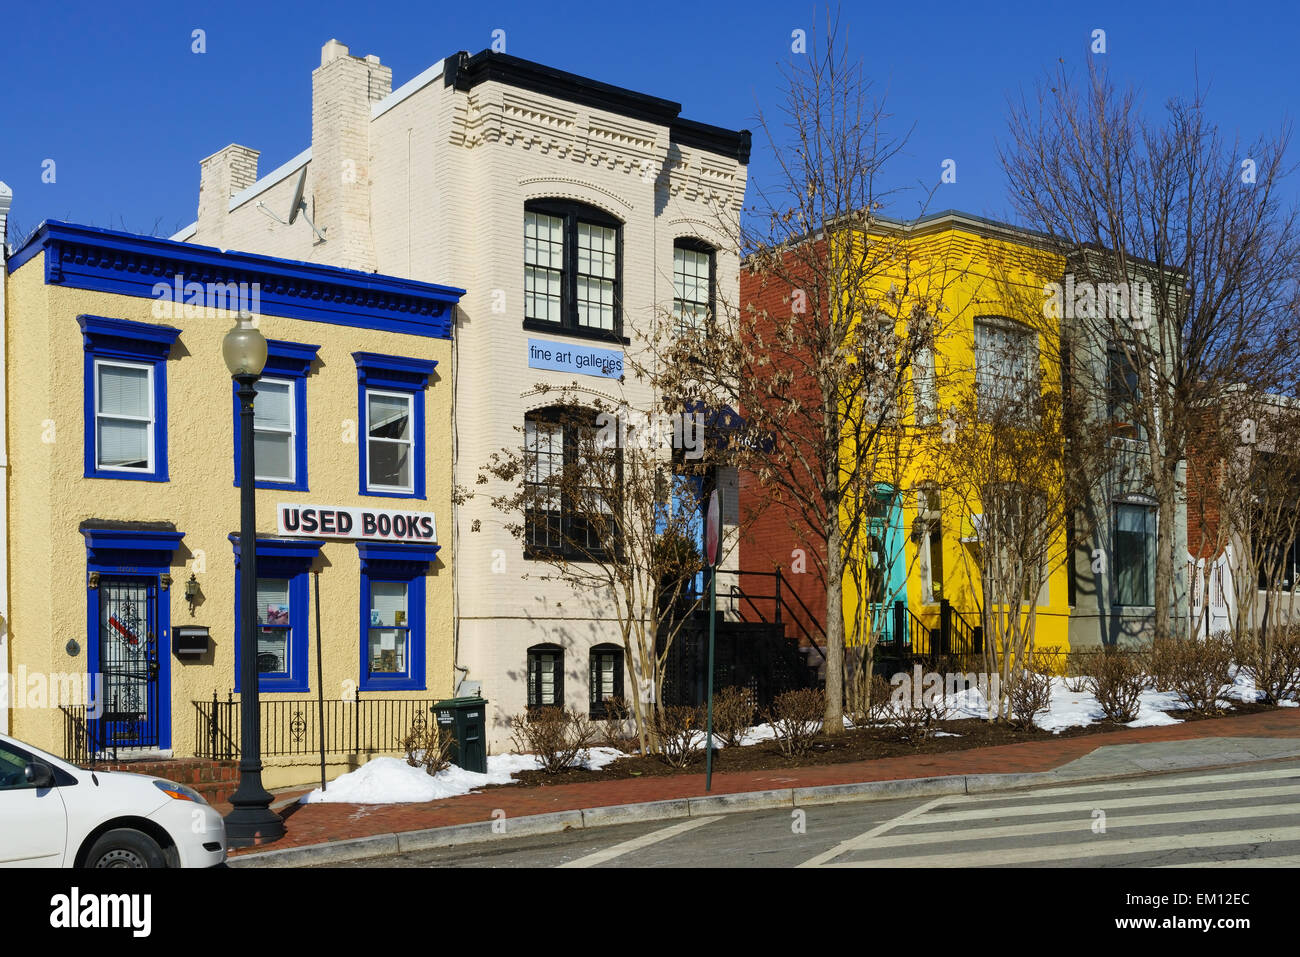 Colourful old houses in the historic area of Georgetown, Washington DC, USA. - Stock Image